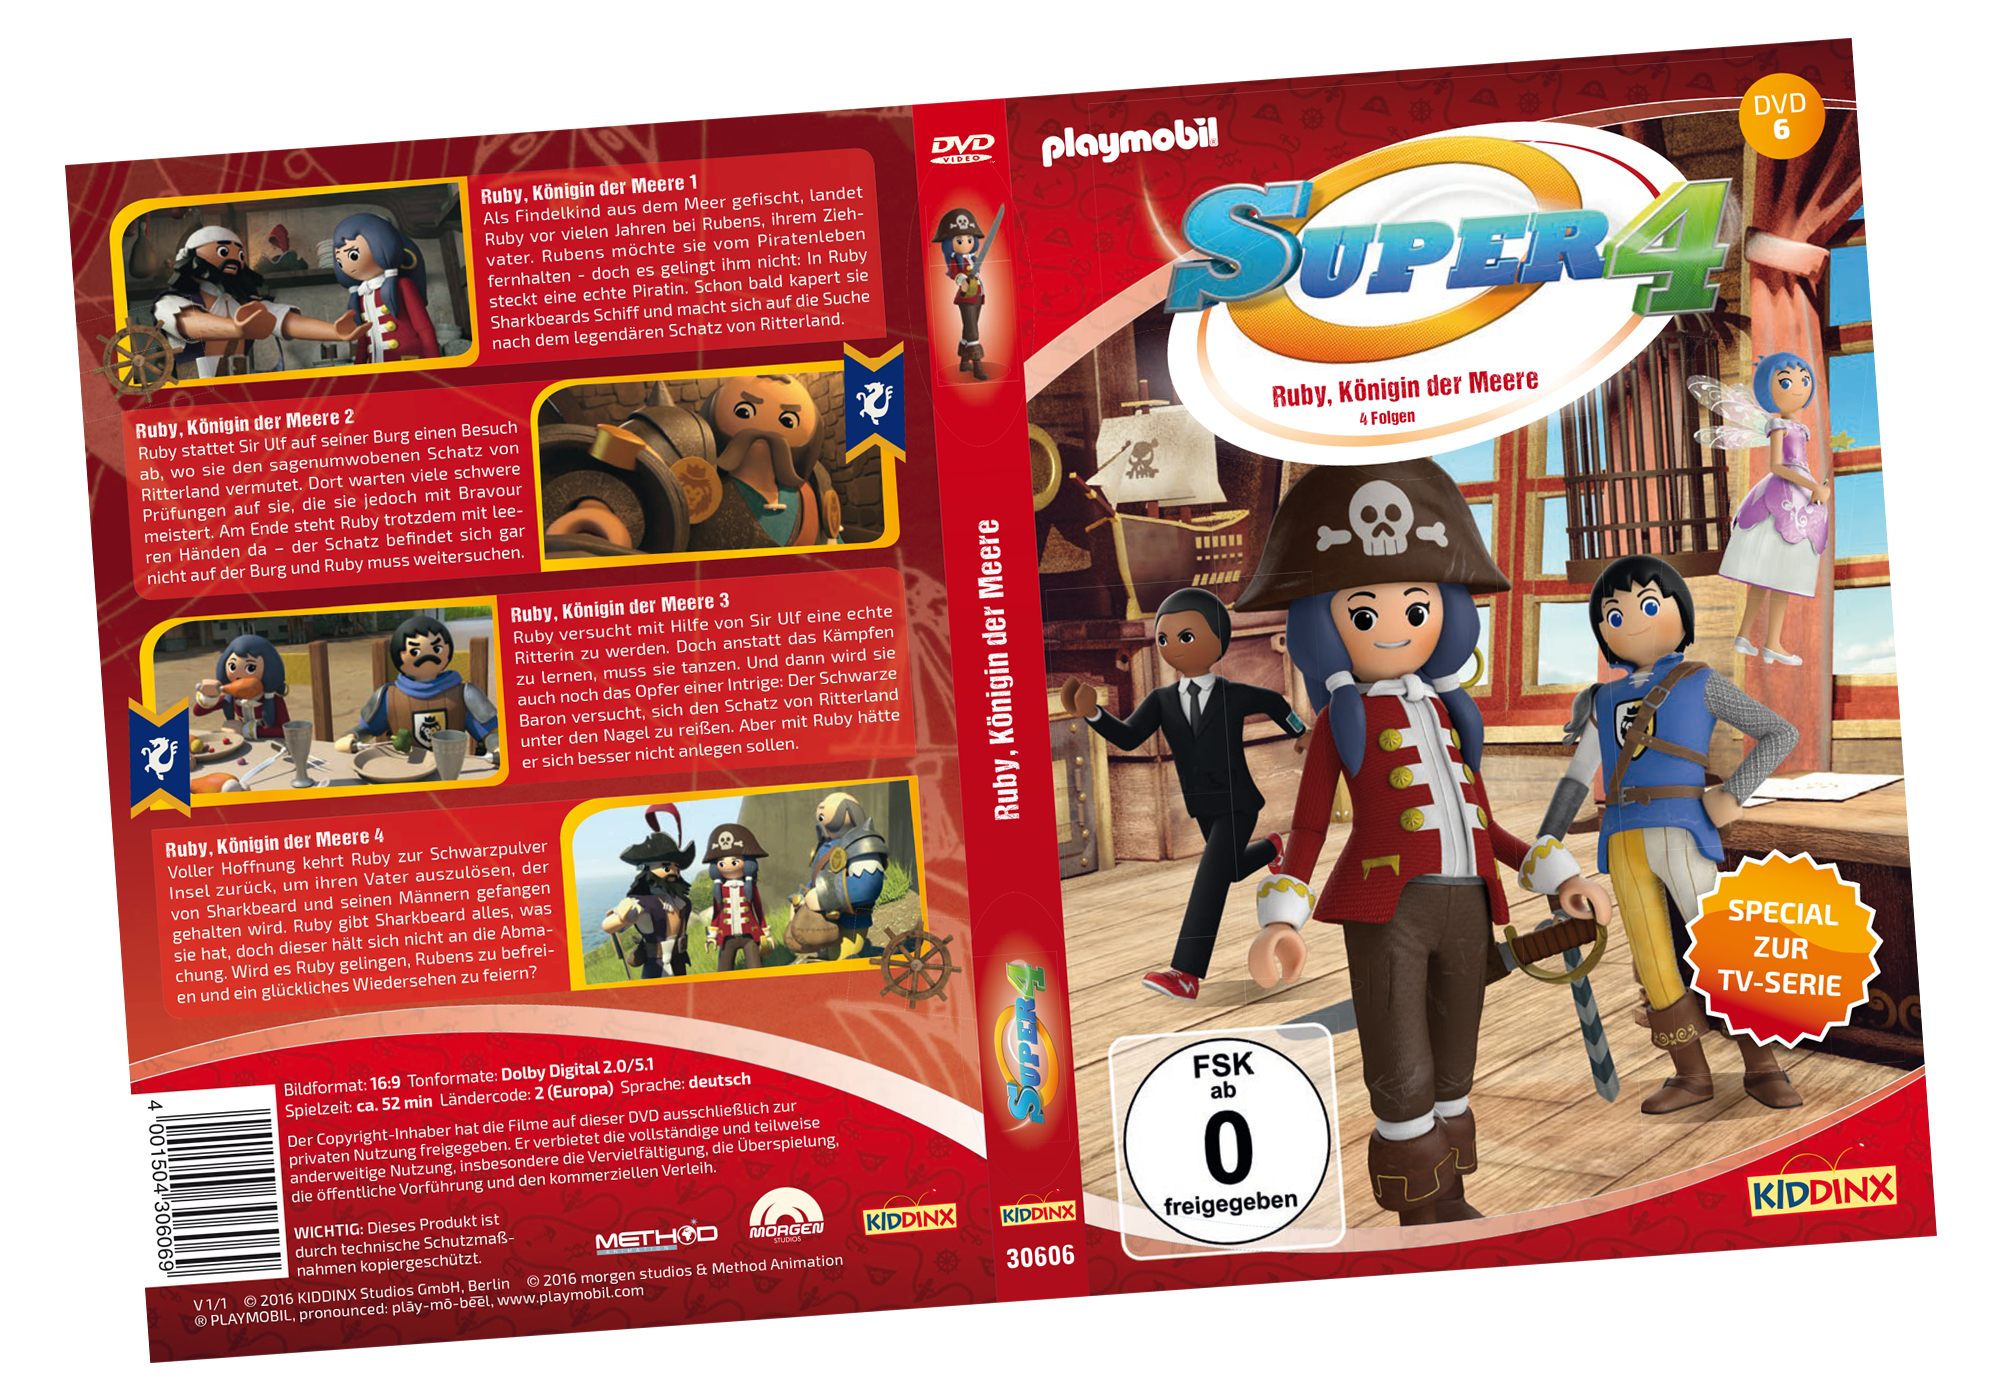 http://media.playmobil.com/i/playmobil/80481_product_detail